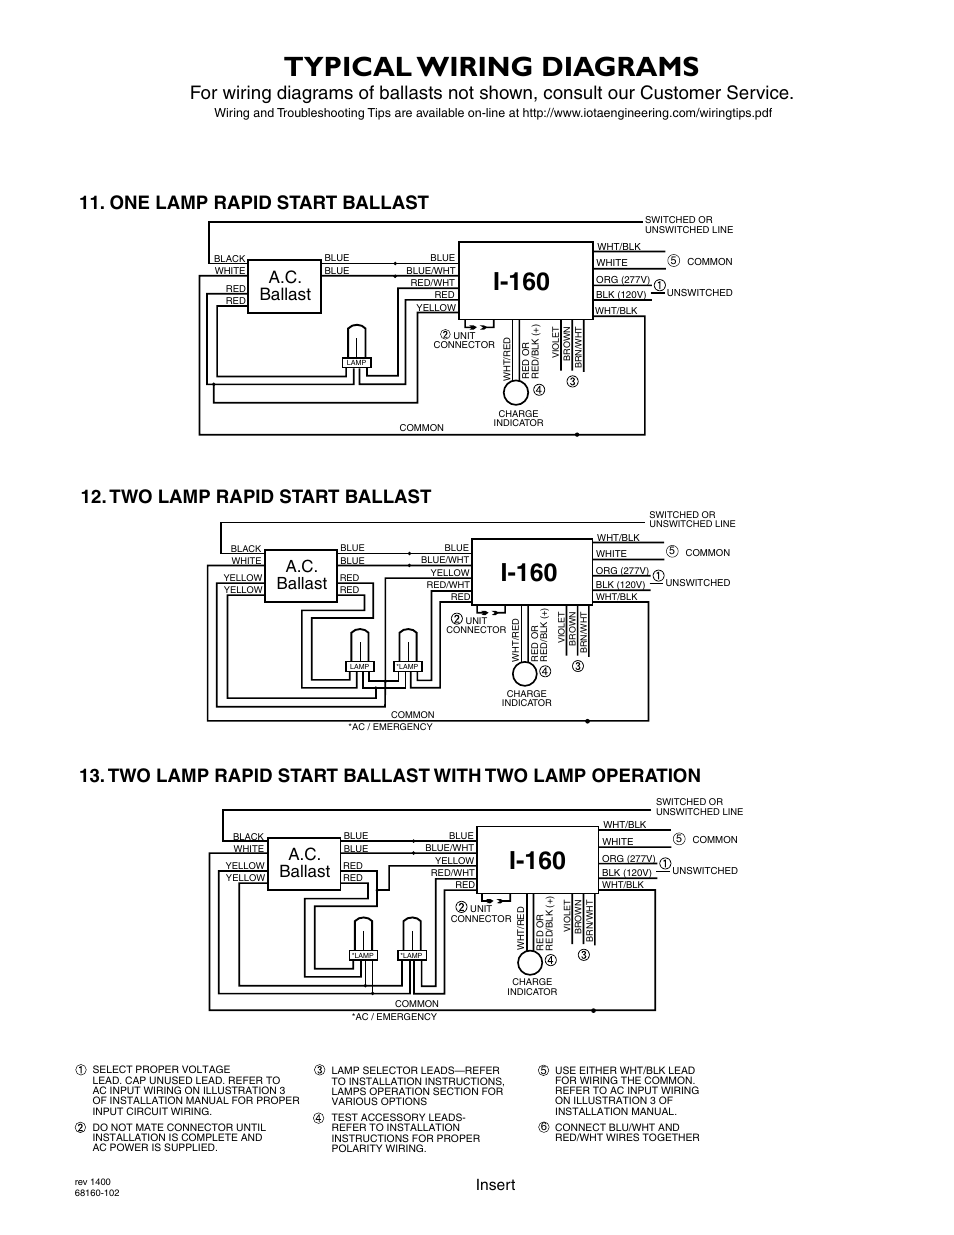 Fluorescent Wiring Diagram Manual Start - Wiring Diagram M2 on